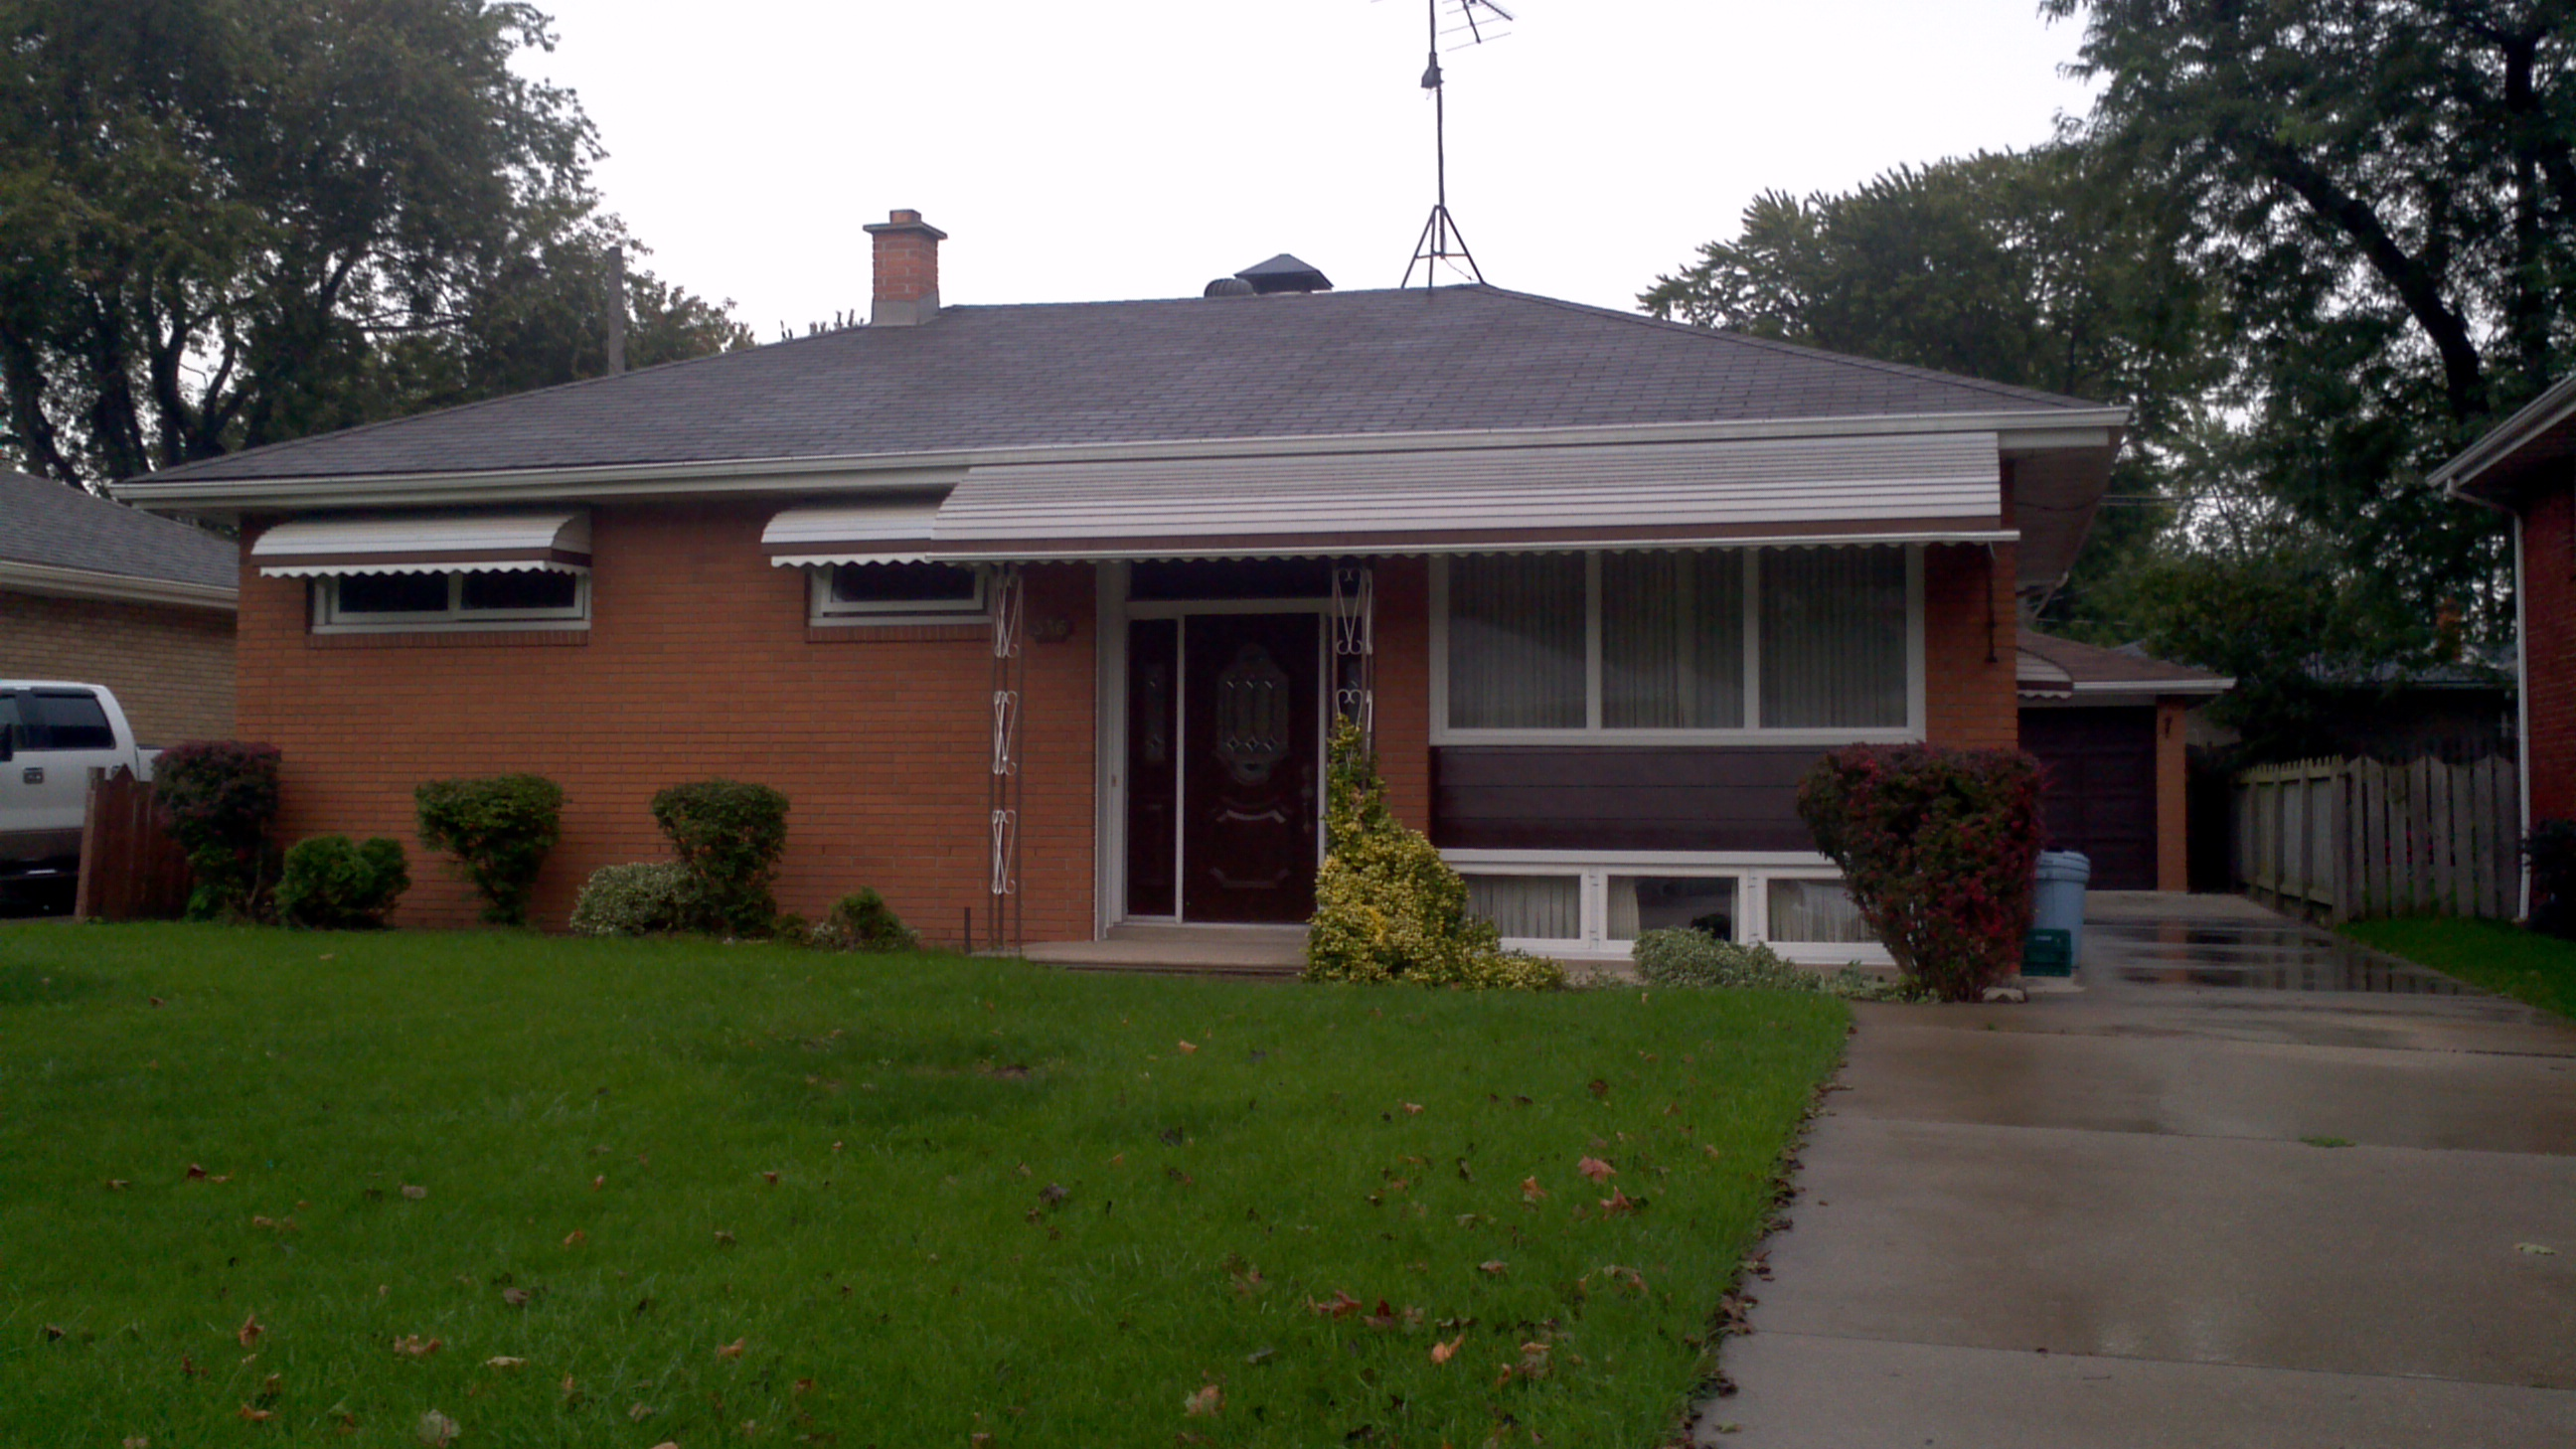 SPACIOUS EAST WINDSOR RAISED RANCH ON QUIET STREET WITH DOUBLE GARAGE